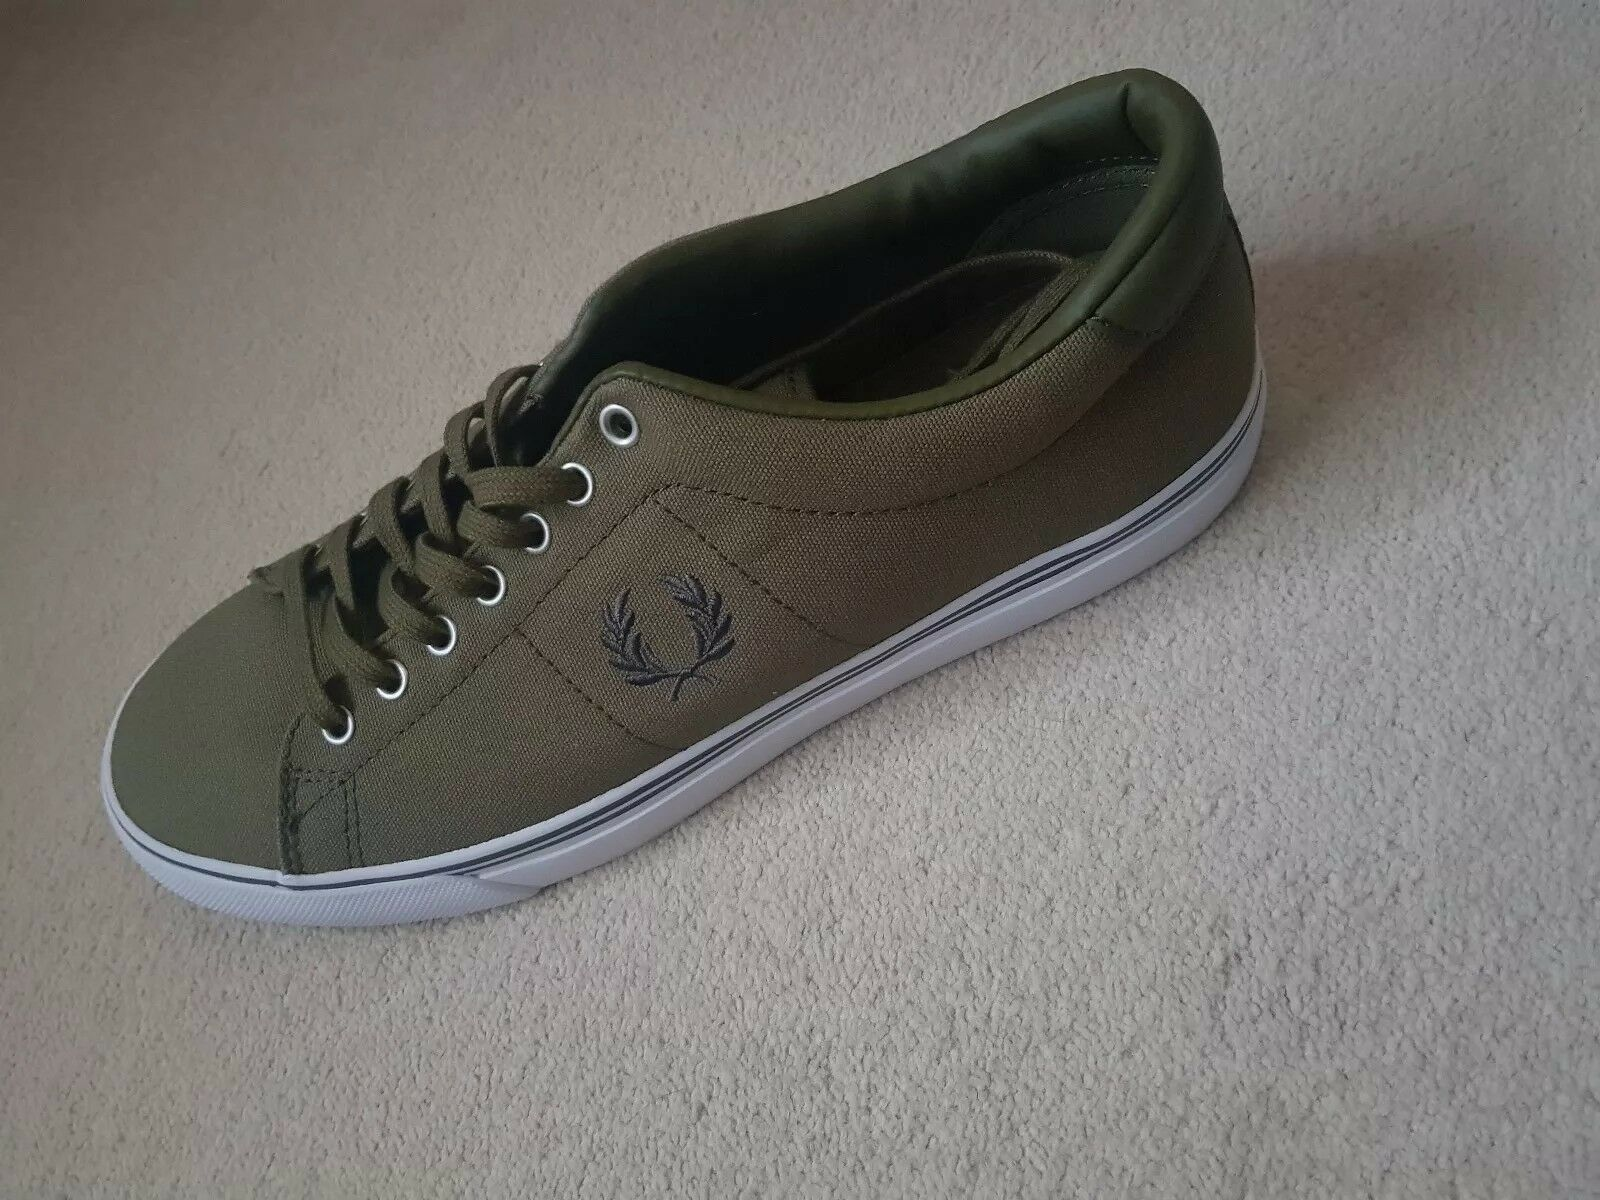 Fred Perry men's casual canvas shoes - - - khaki, size 8 uk. af6cd9